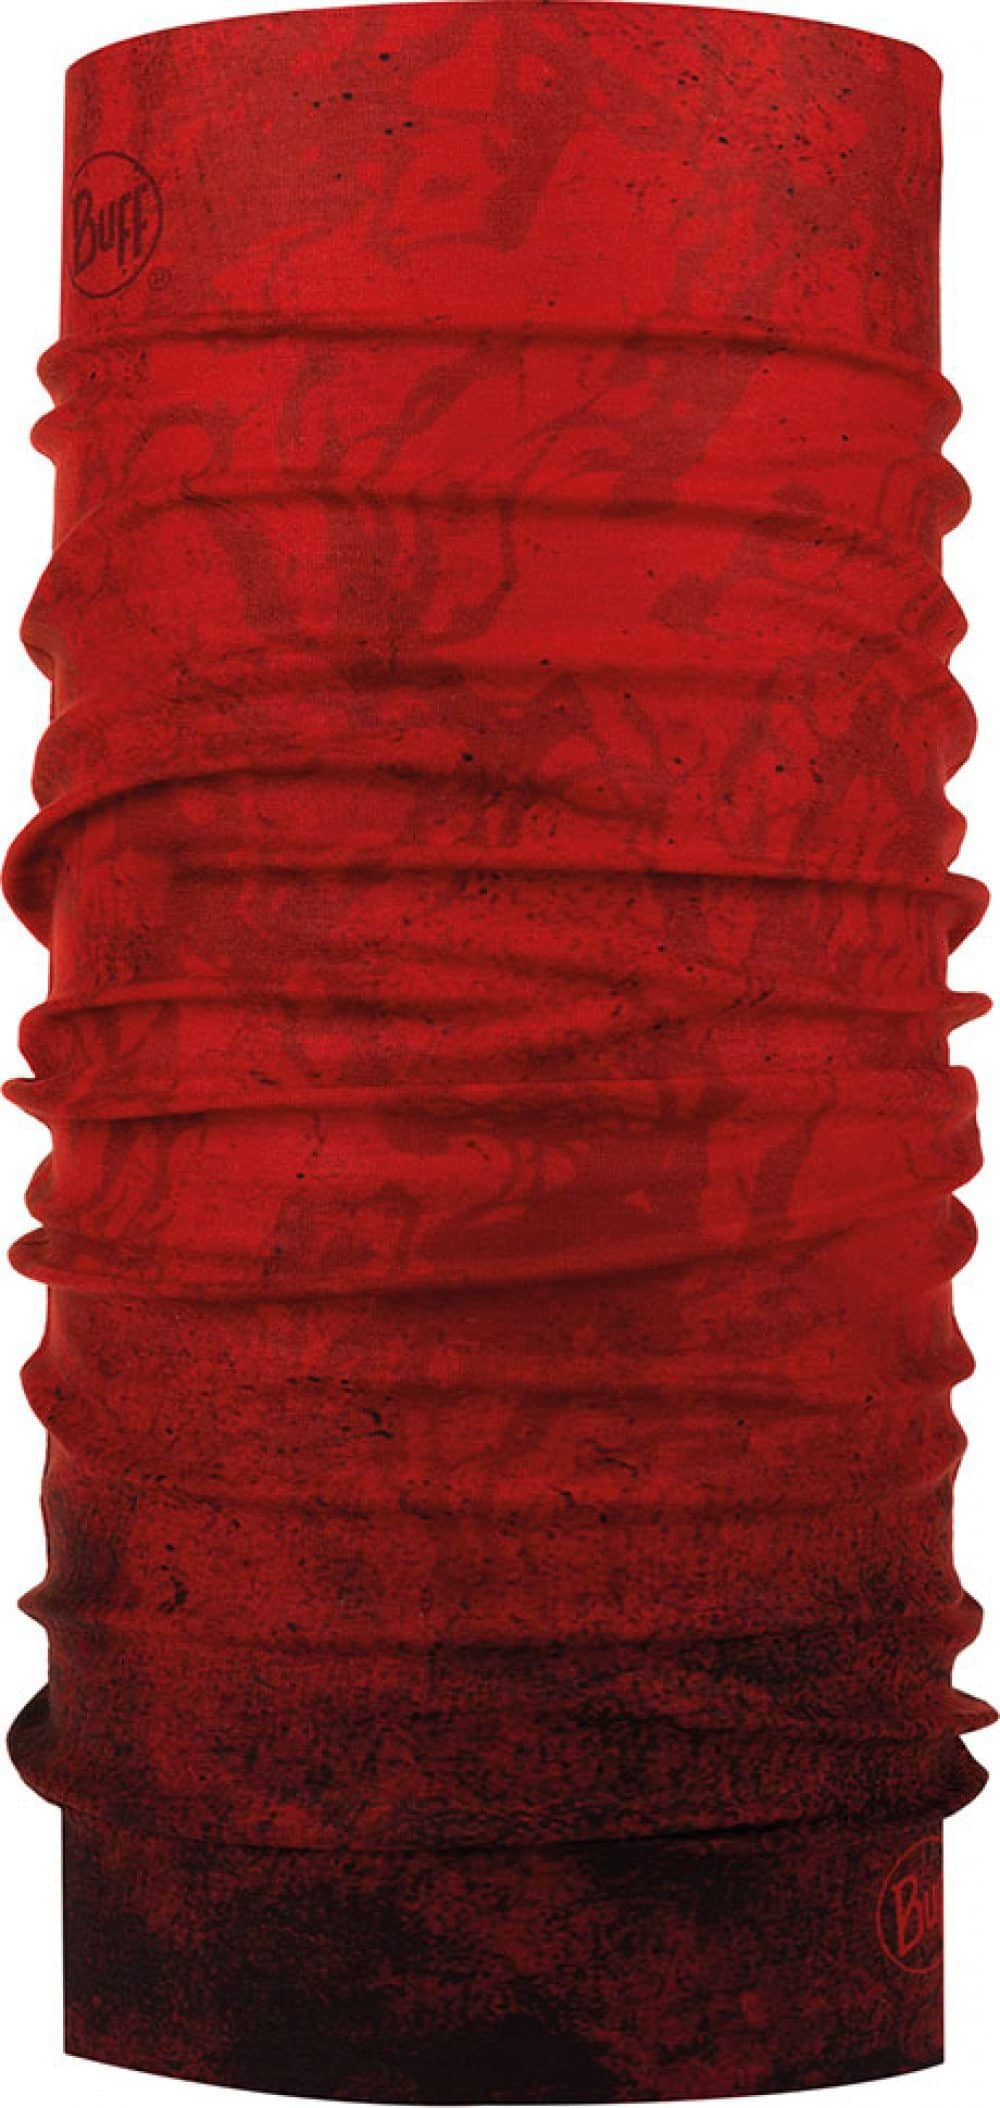 "Studio photo of the Original Buff® Design ""Katmandu Red"". Source: buff.eu"